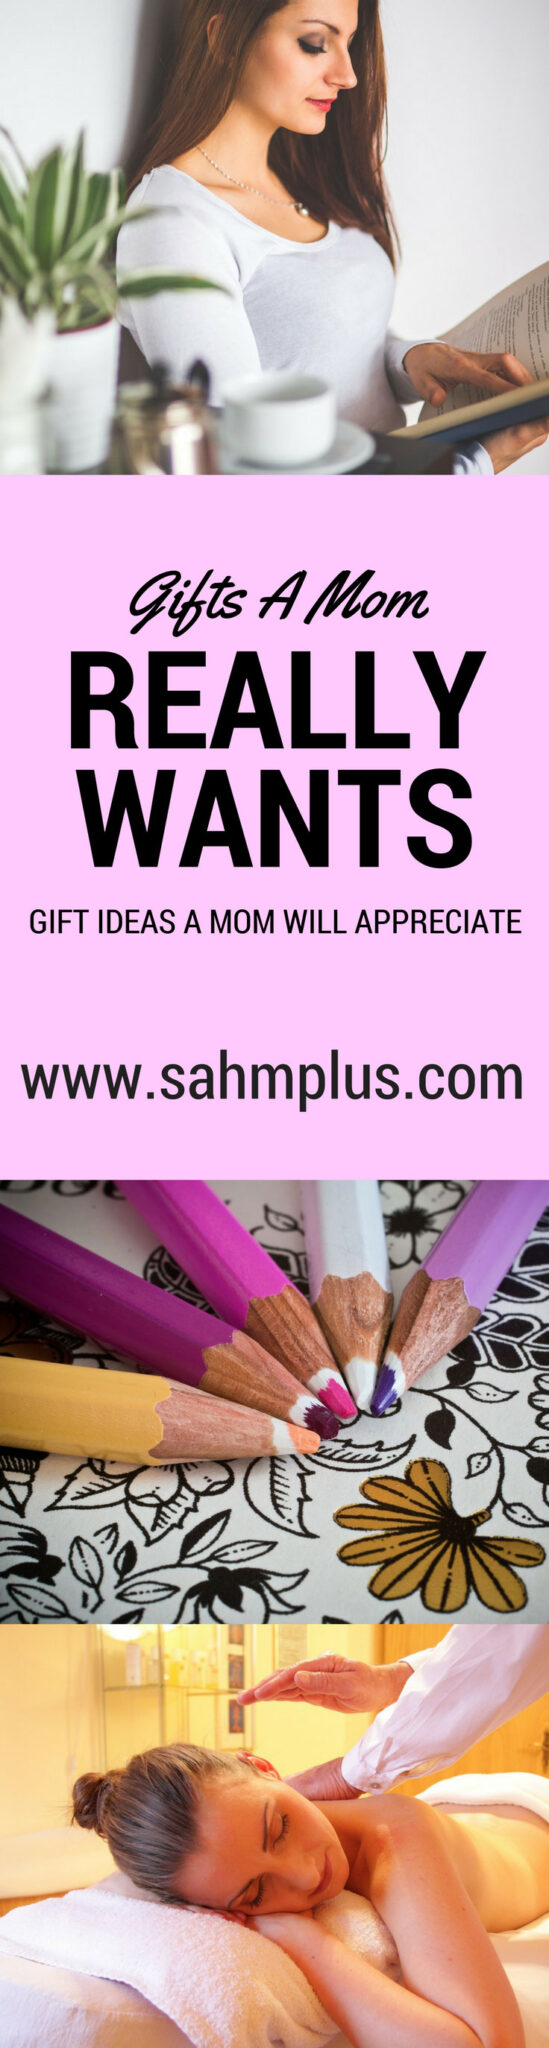 Gift ideas a mom will appreciate. Whether it's Mother's Day, Christmas, or Birthdays, give mom a gift she'll love